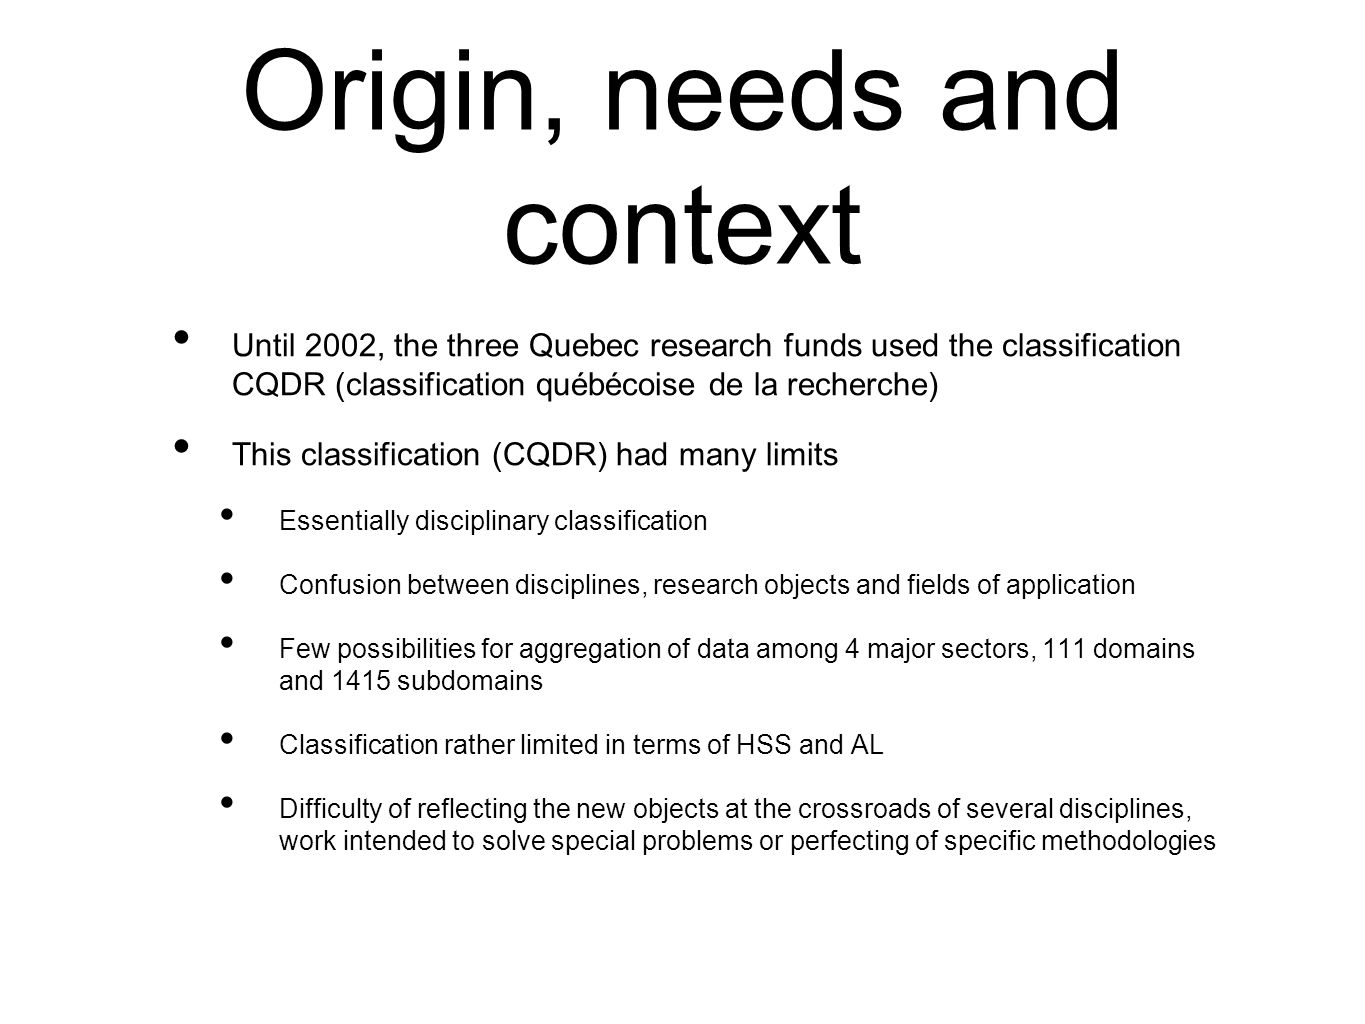 Origin, needs and context